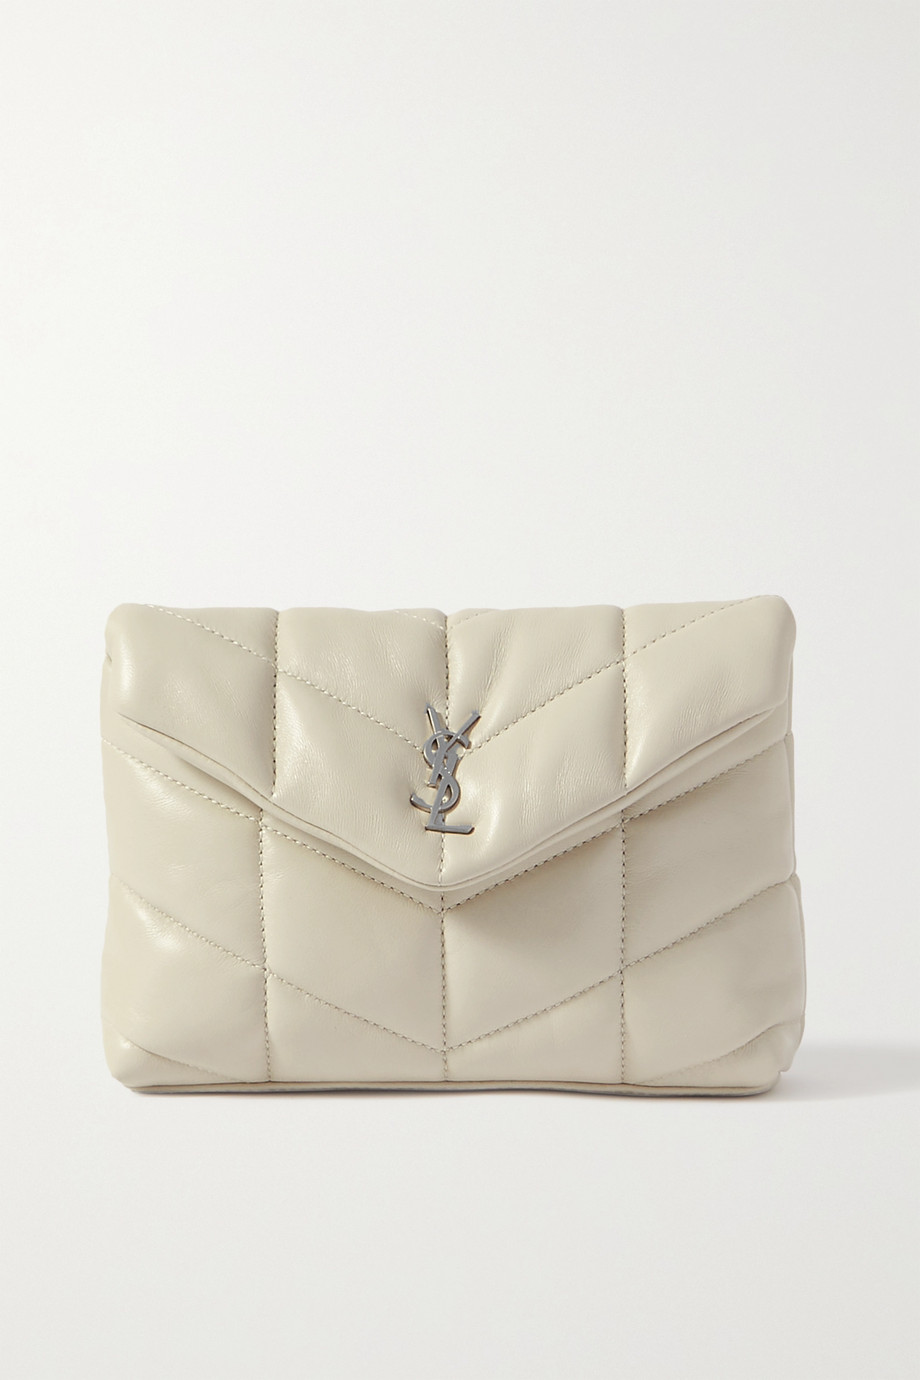 SAINT LAURENT Loulou Puffer small quilted leather clutch